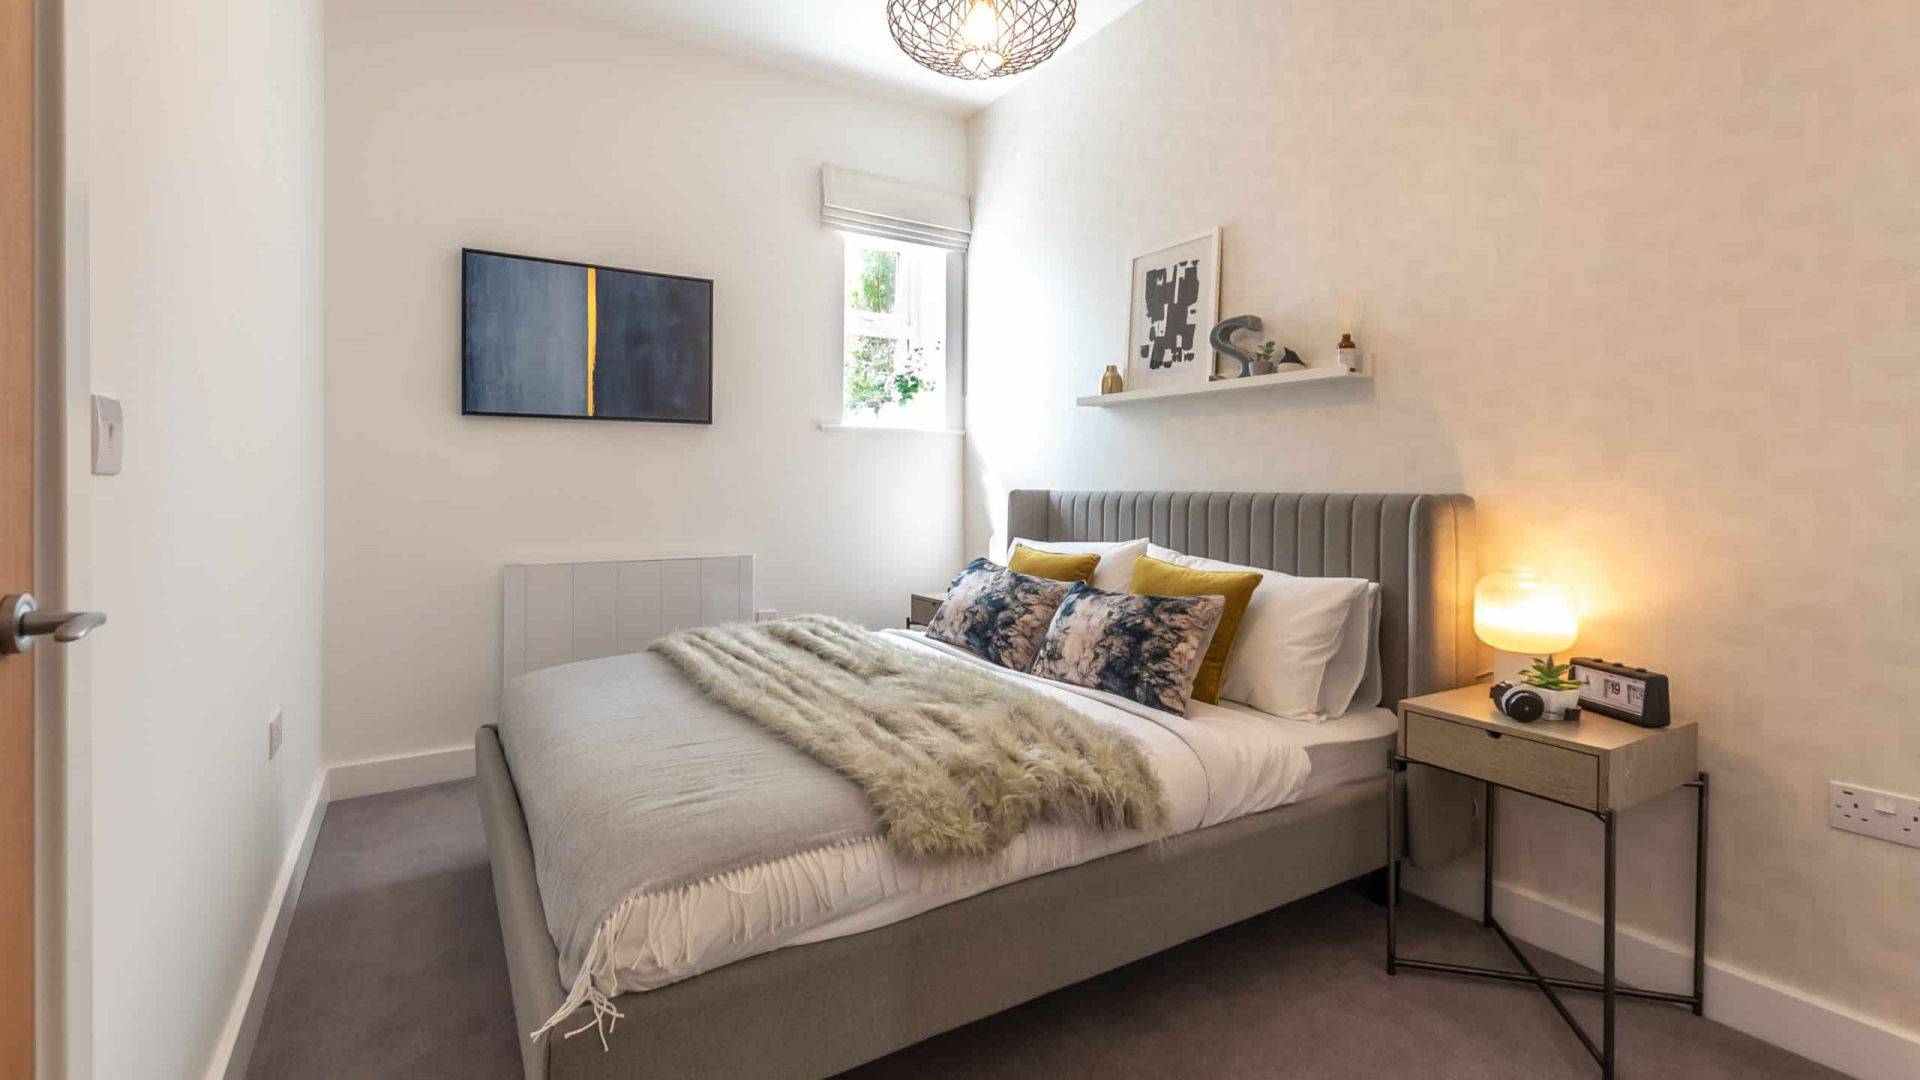 Southern House Property: Bedroom